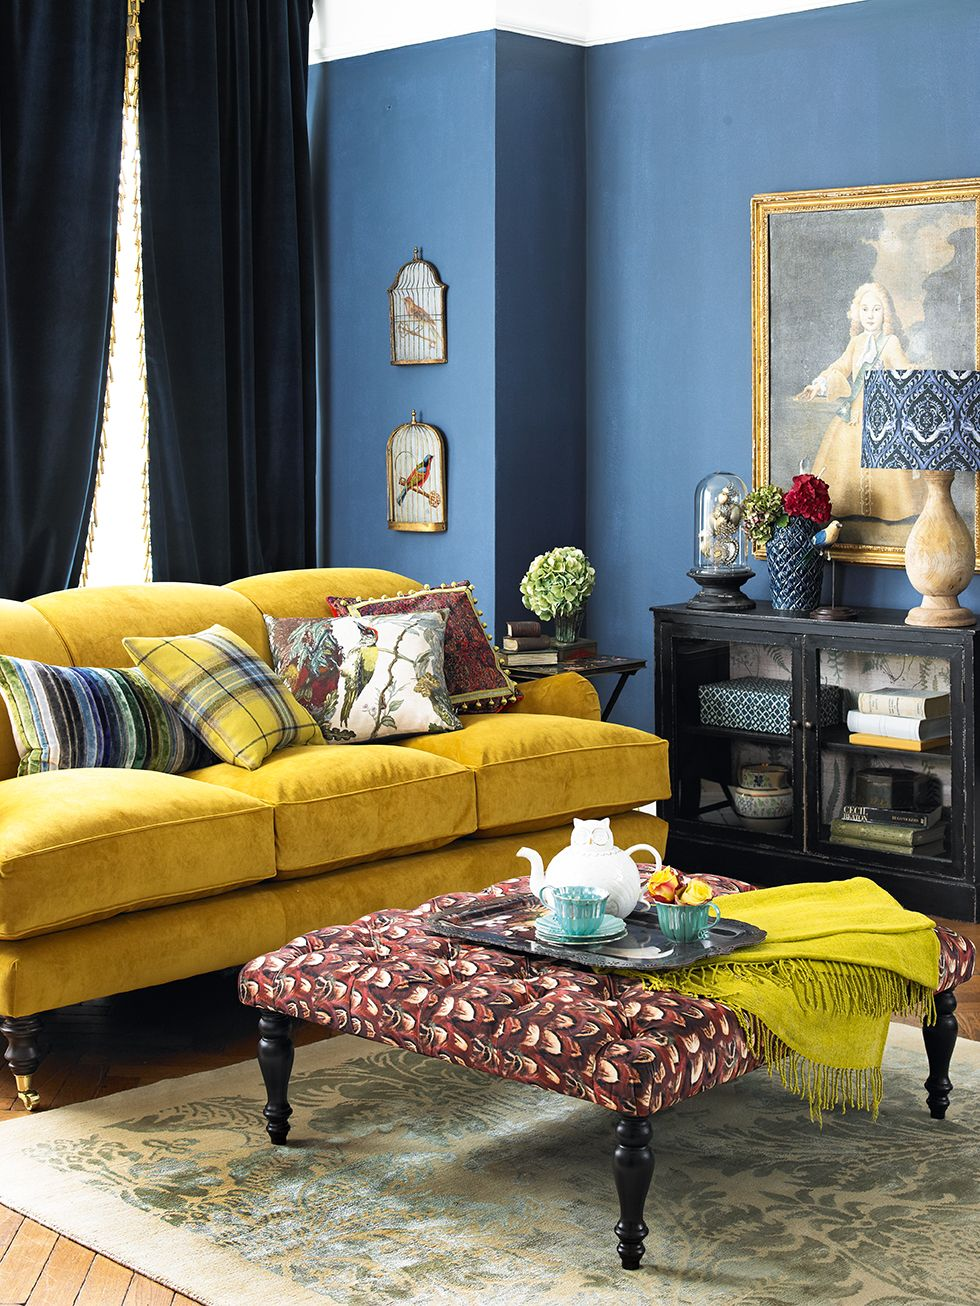 Yellow and blue living room - Yellow Sofa A Sunshine Piece For Your Living Room